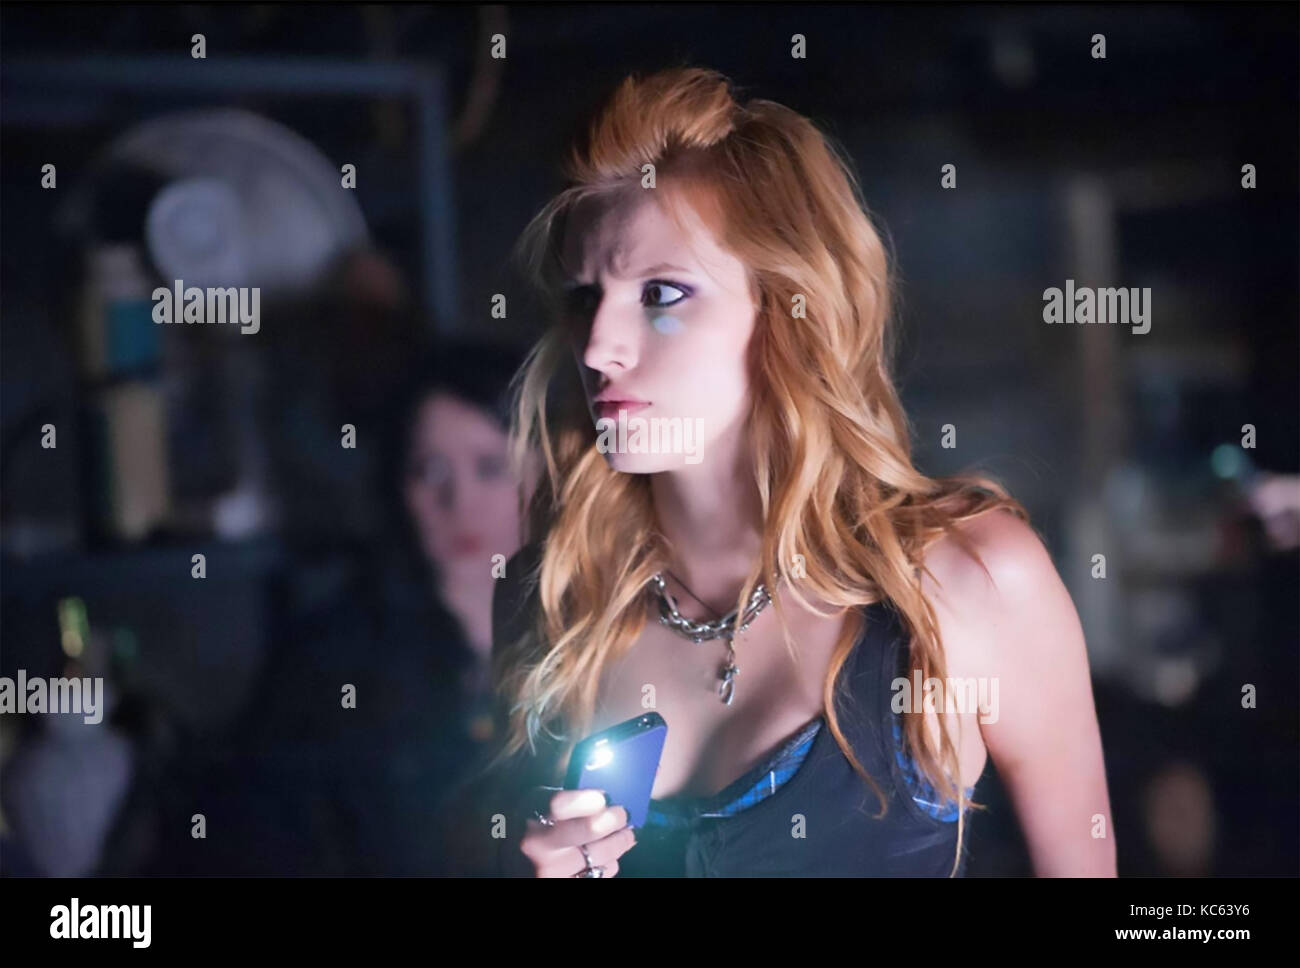 AMITYVILLE; THE AWAKENING 2017 Blumhouse Productions film with Bella Thorne - Stock Image